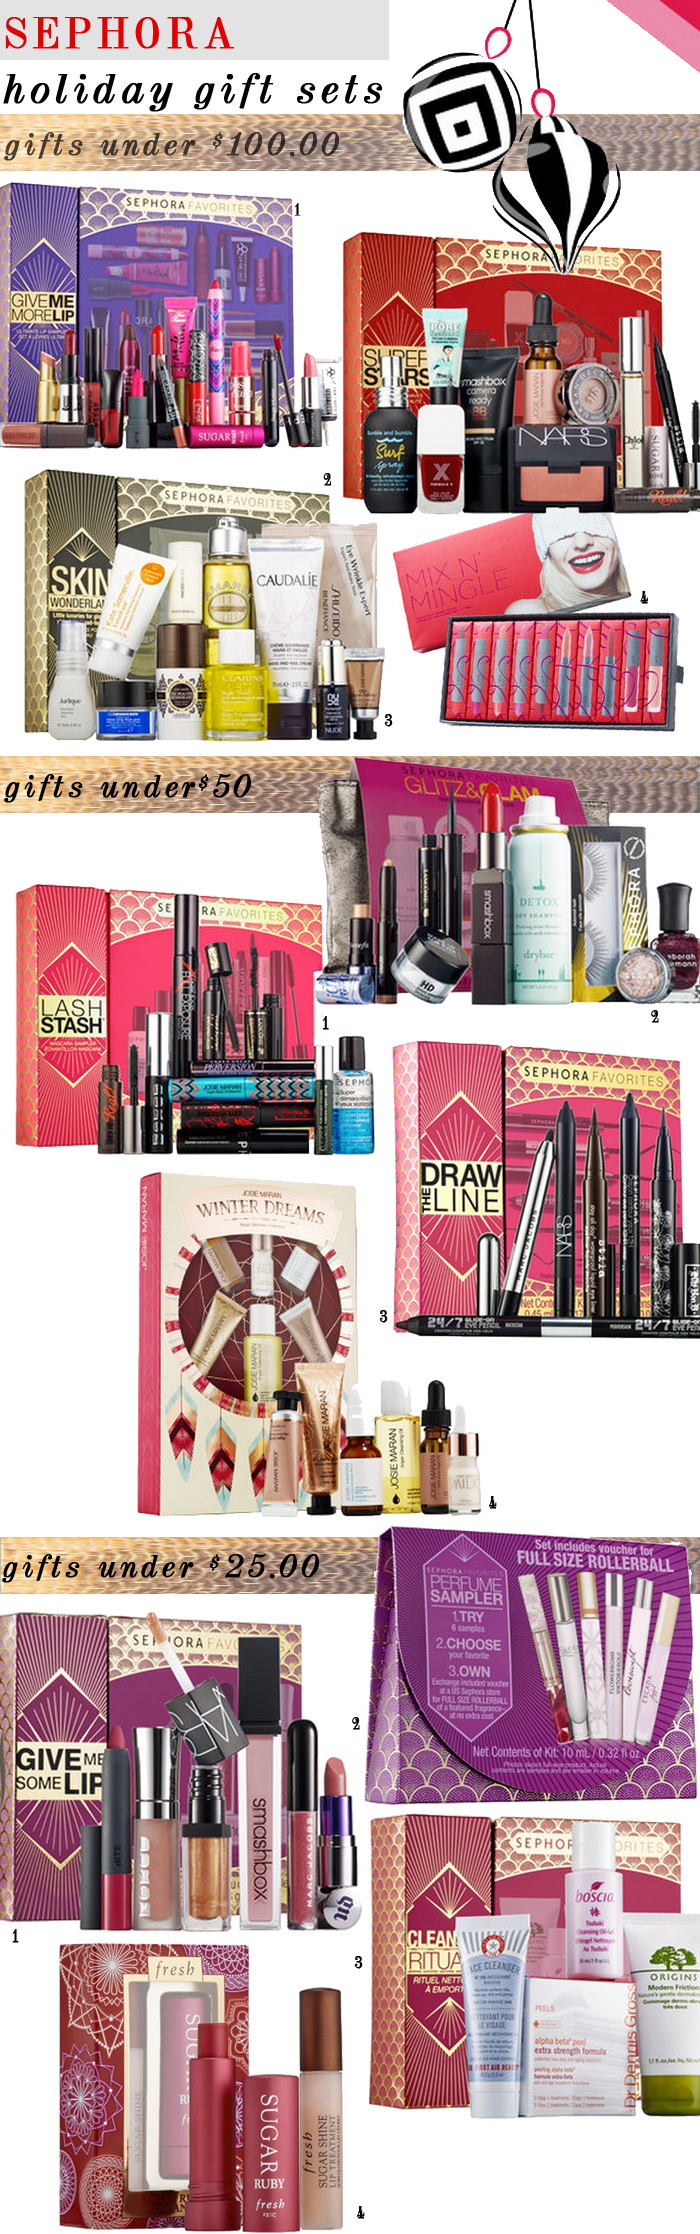 sephora holiday gifts sets that are exclusive